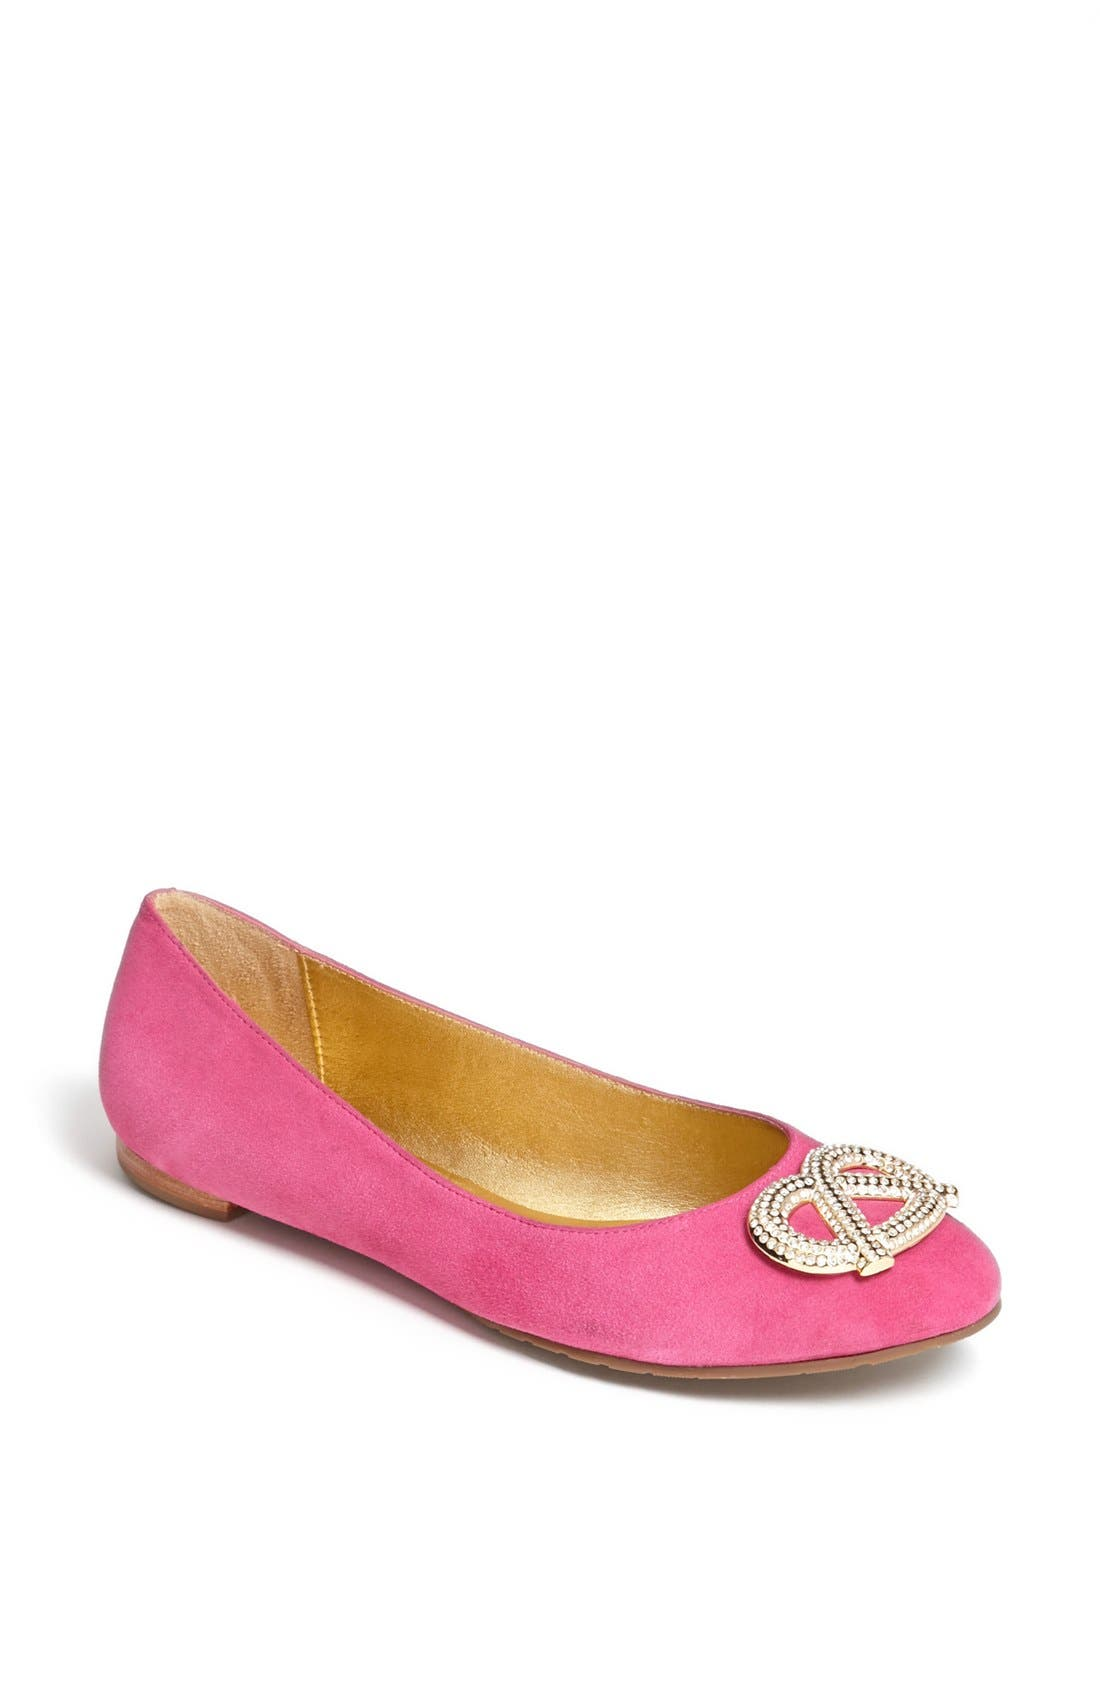 Alternate Image 1 Selected - kate spade new york 'telly' ballet flat